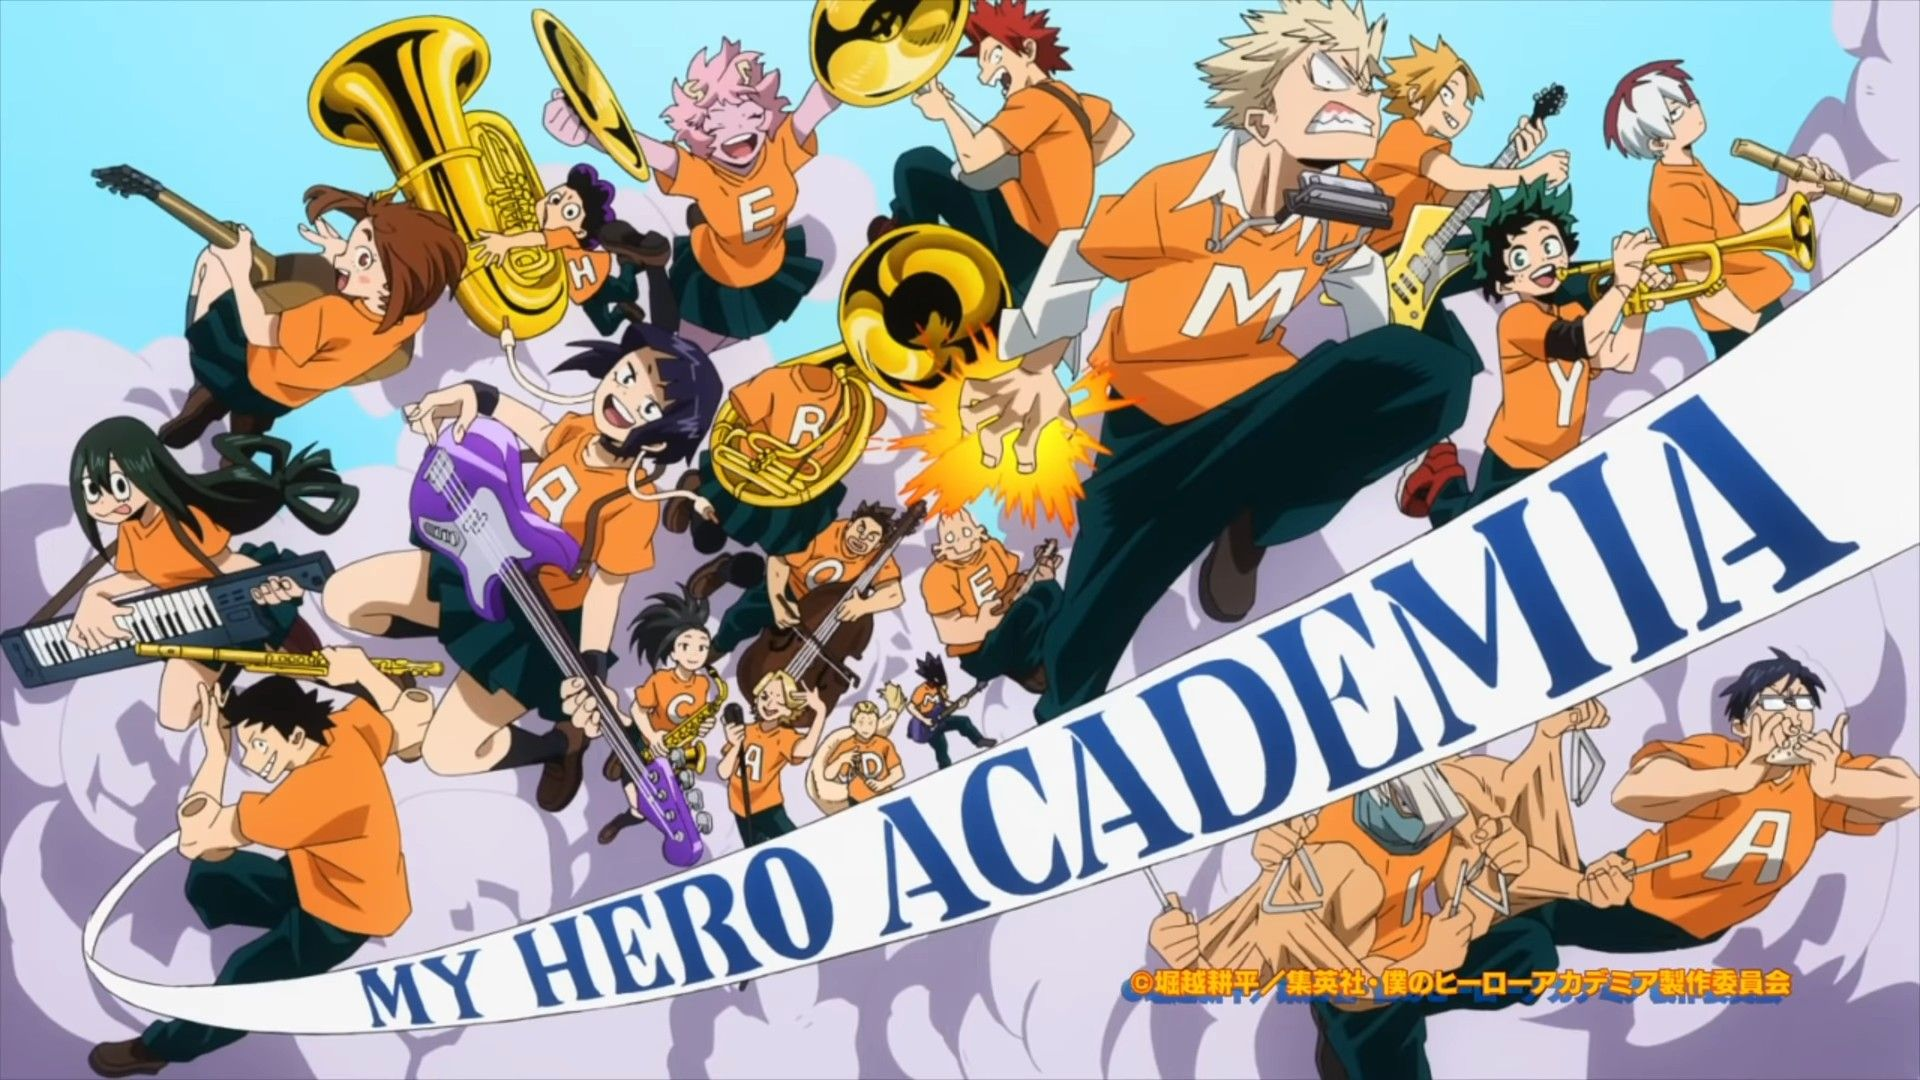 Pin By Maria Lawson On My Hero Academia In 2020 My Hero Hero